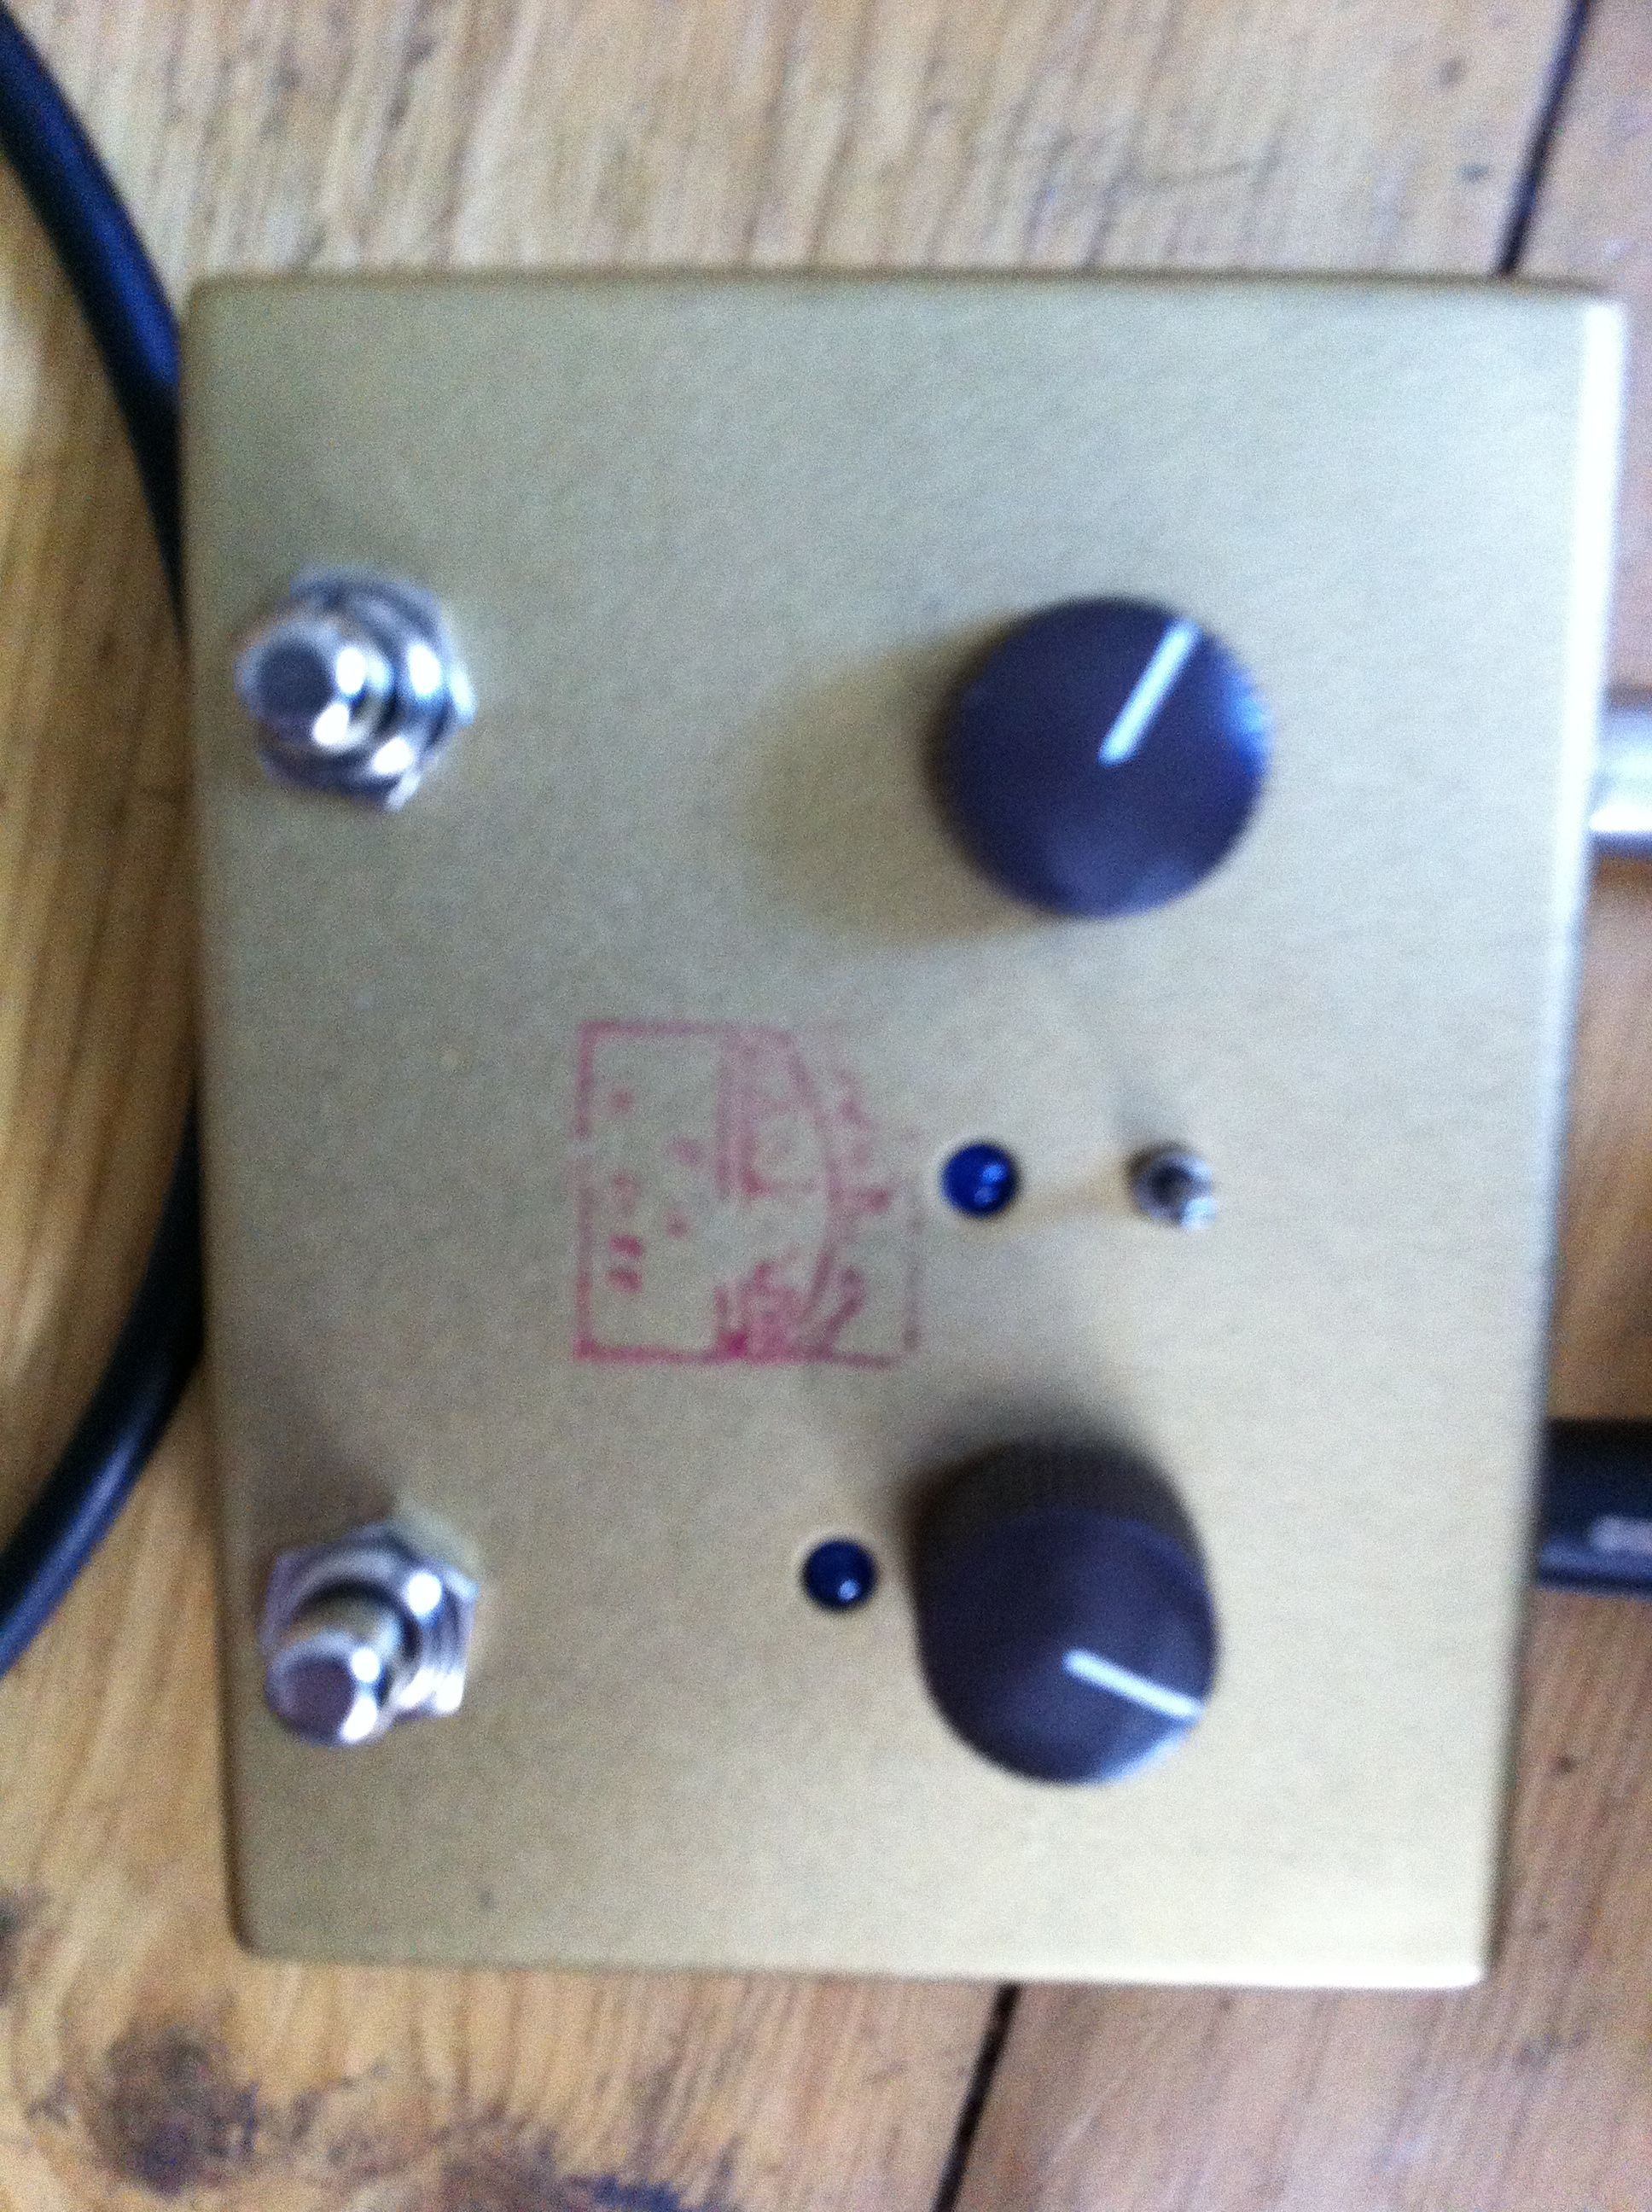 Lovepedal Les Lius overdrive. Did not know what to use it for but was fun none the less.